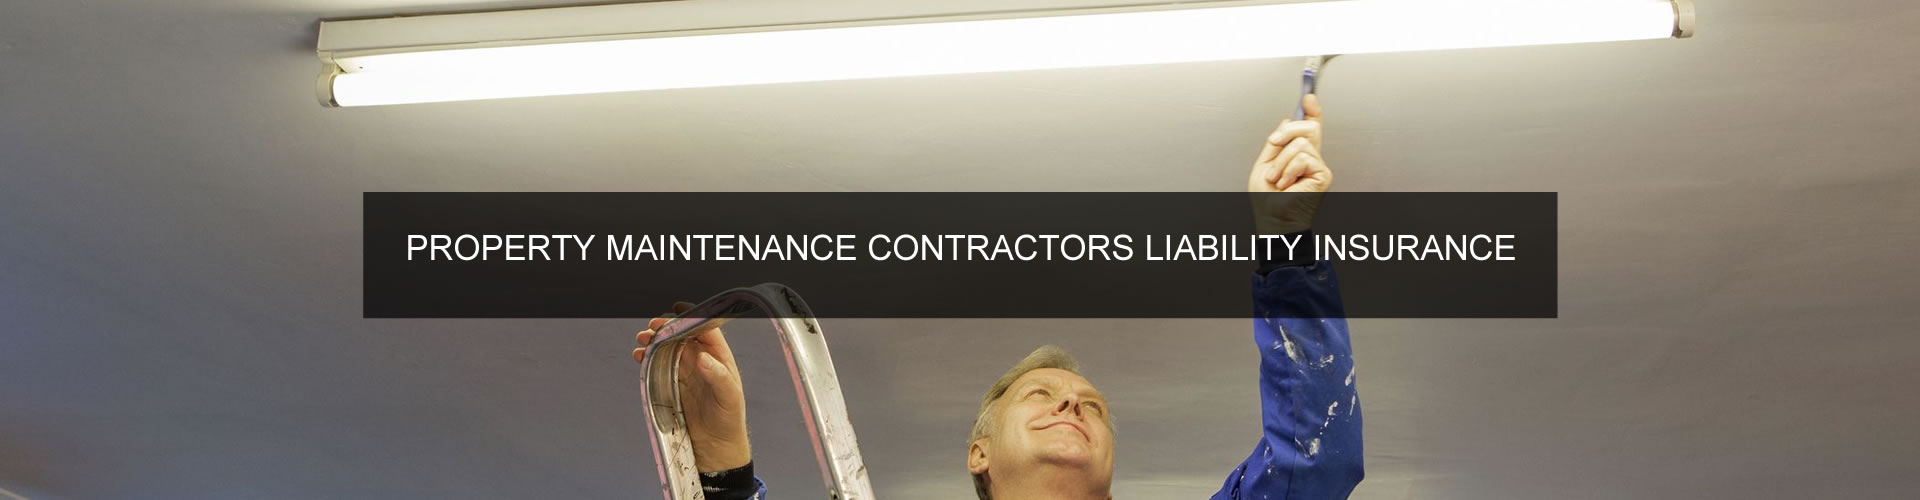 Property Maintenance Contractors Liability Insurance